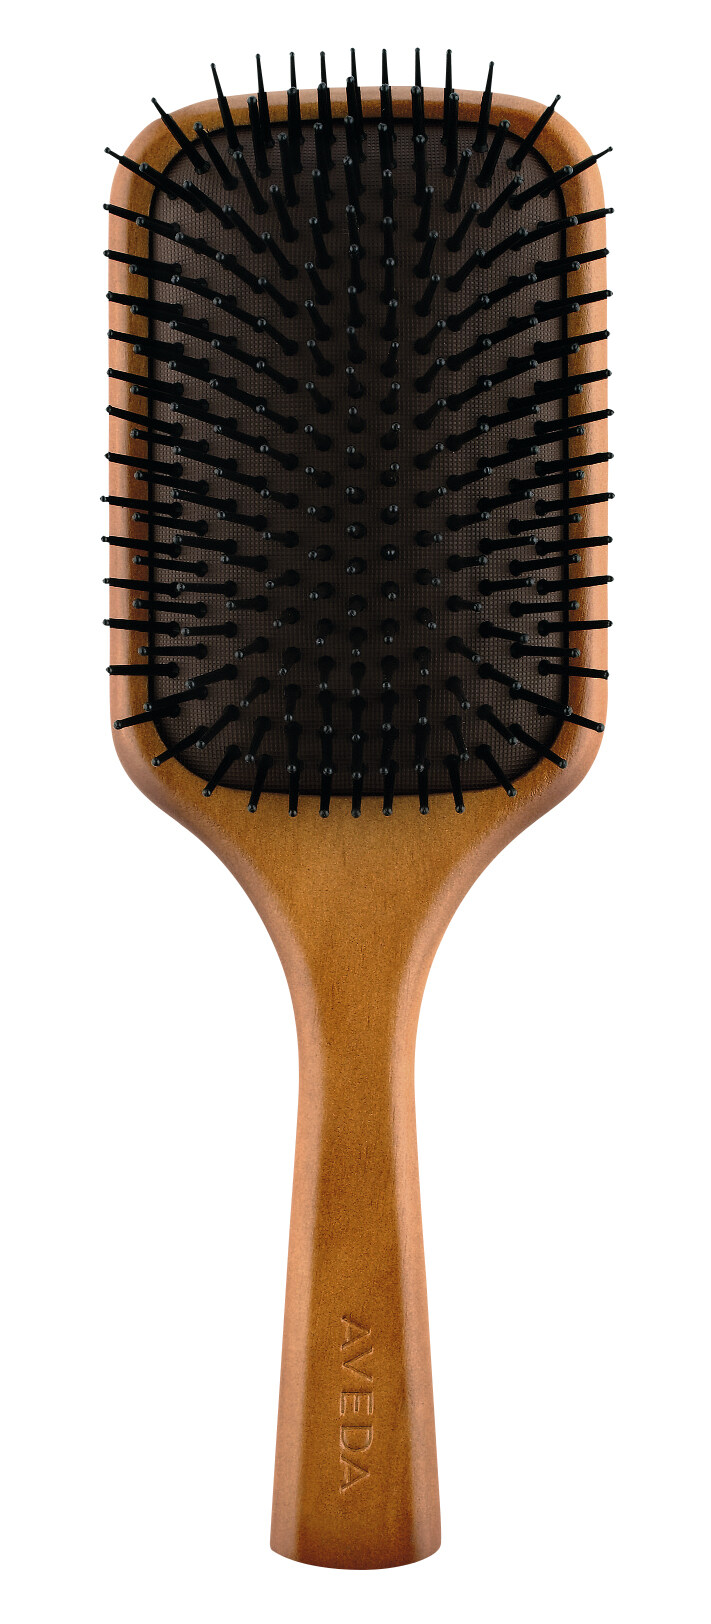 Aveda Paddle Brush($260)